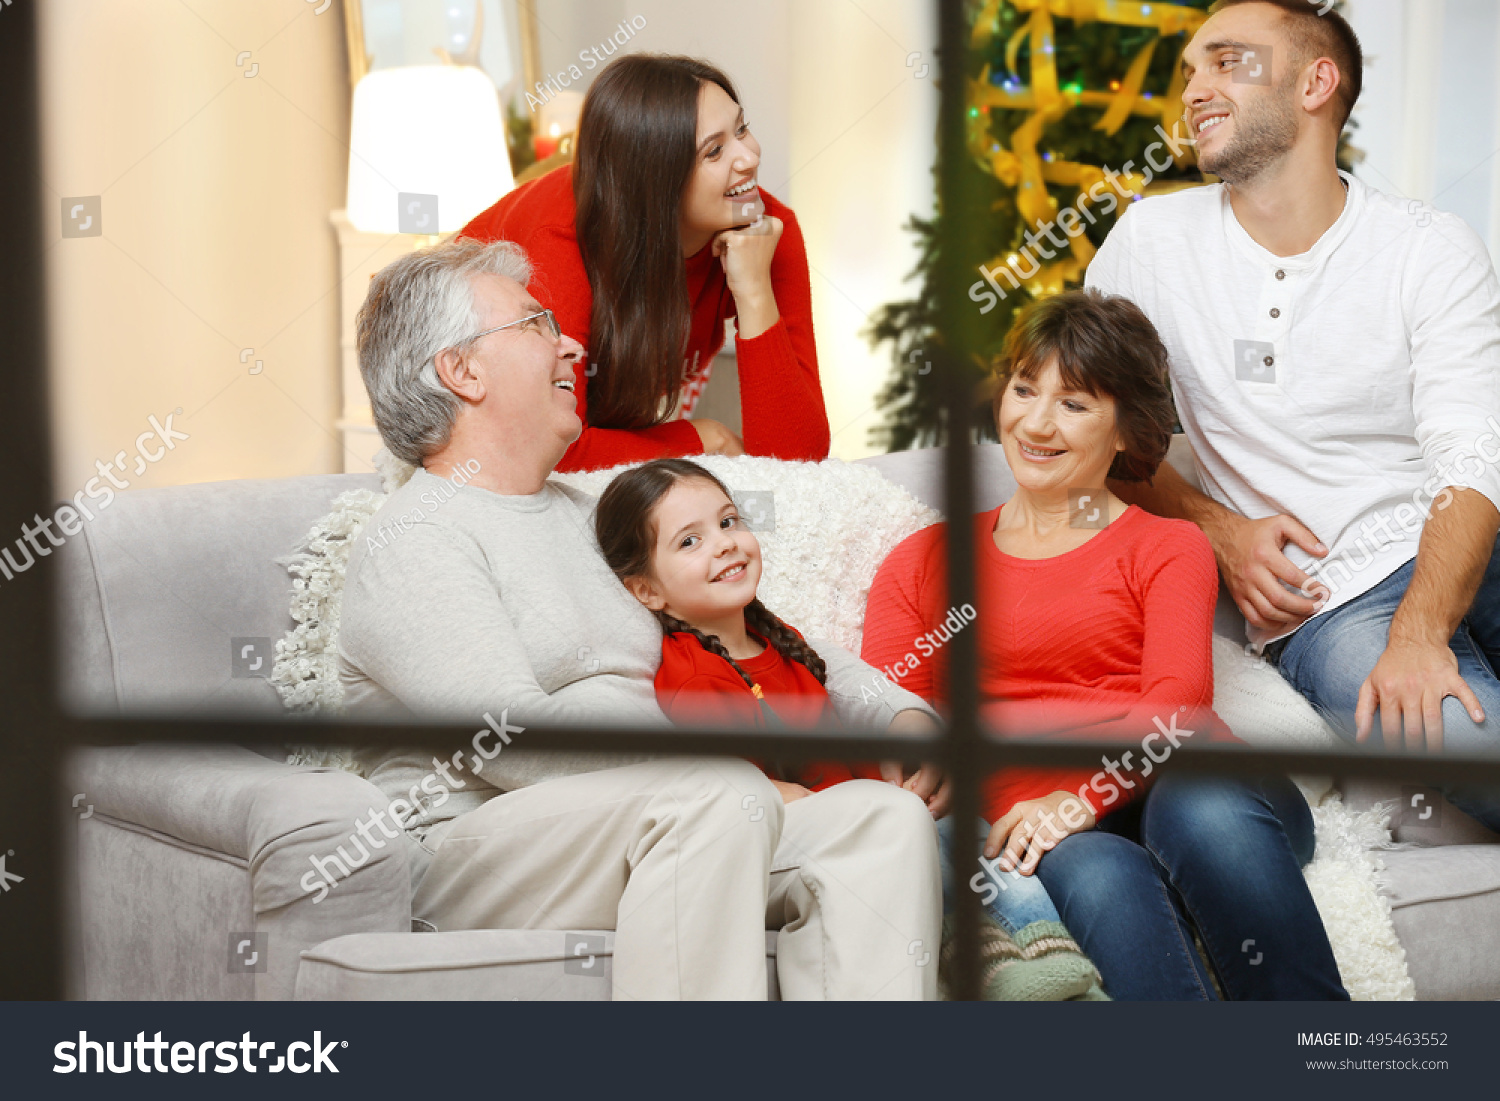 Happy family in living room